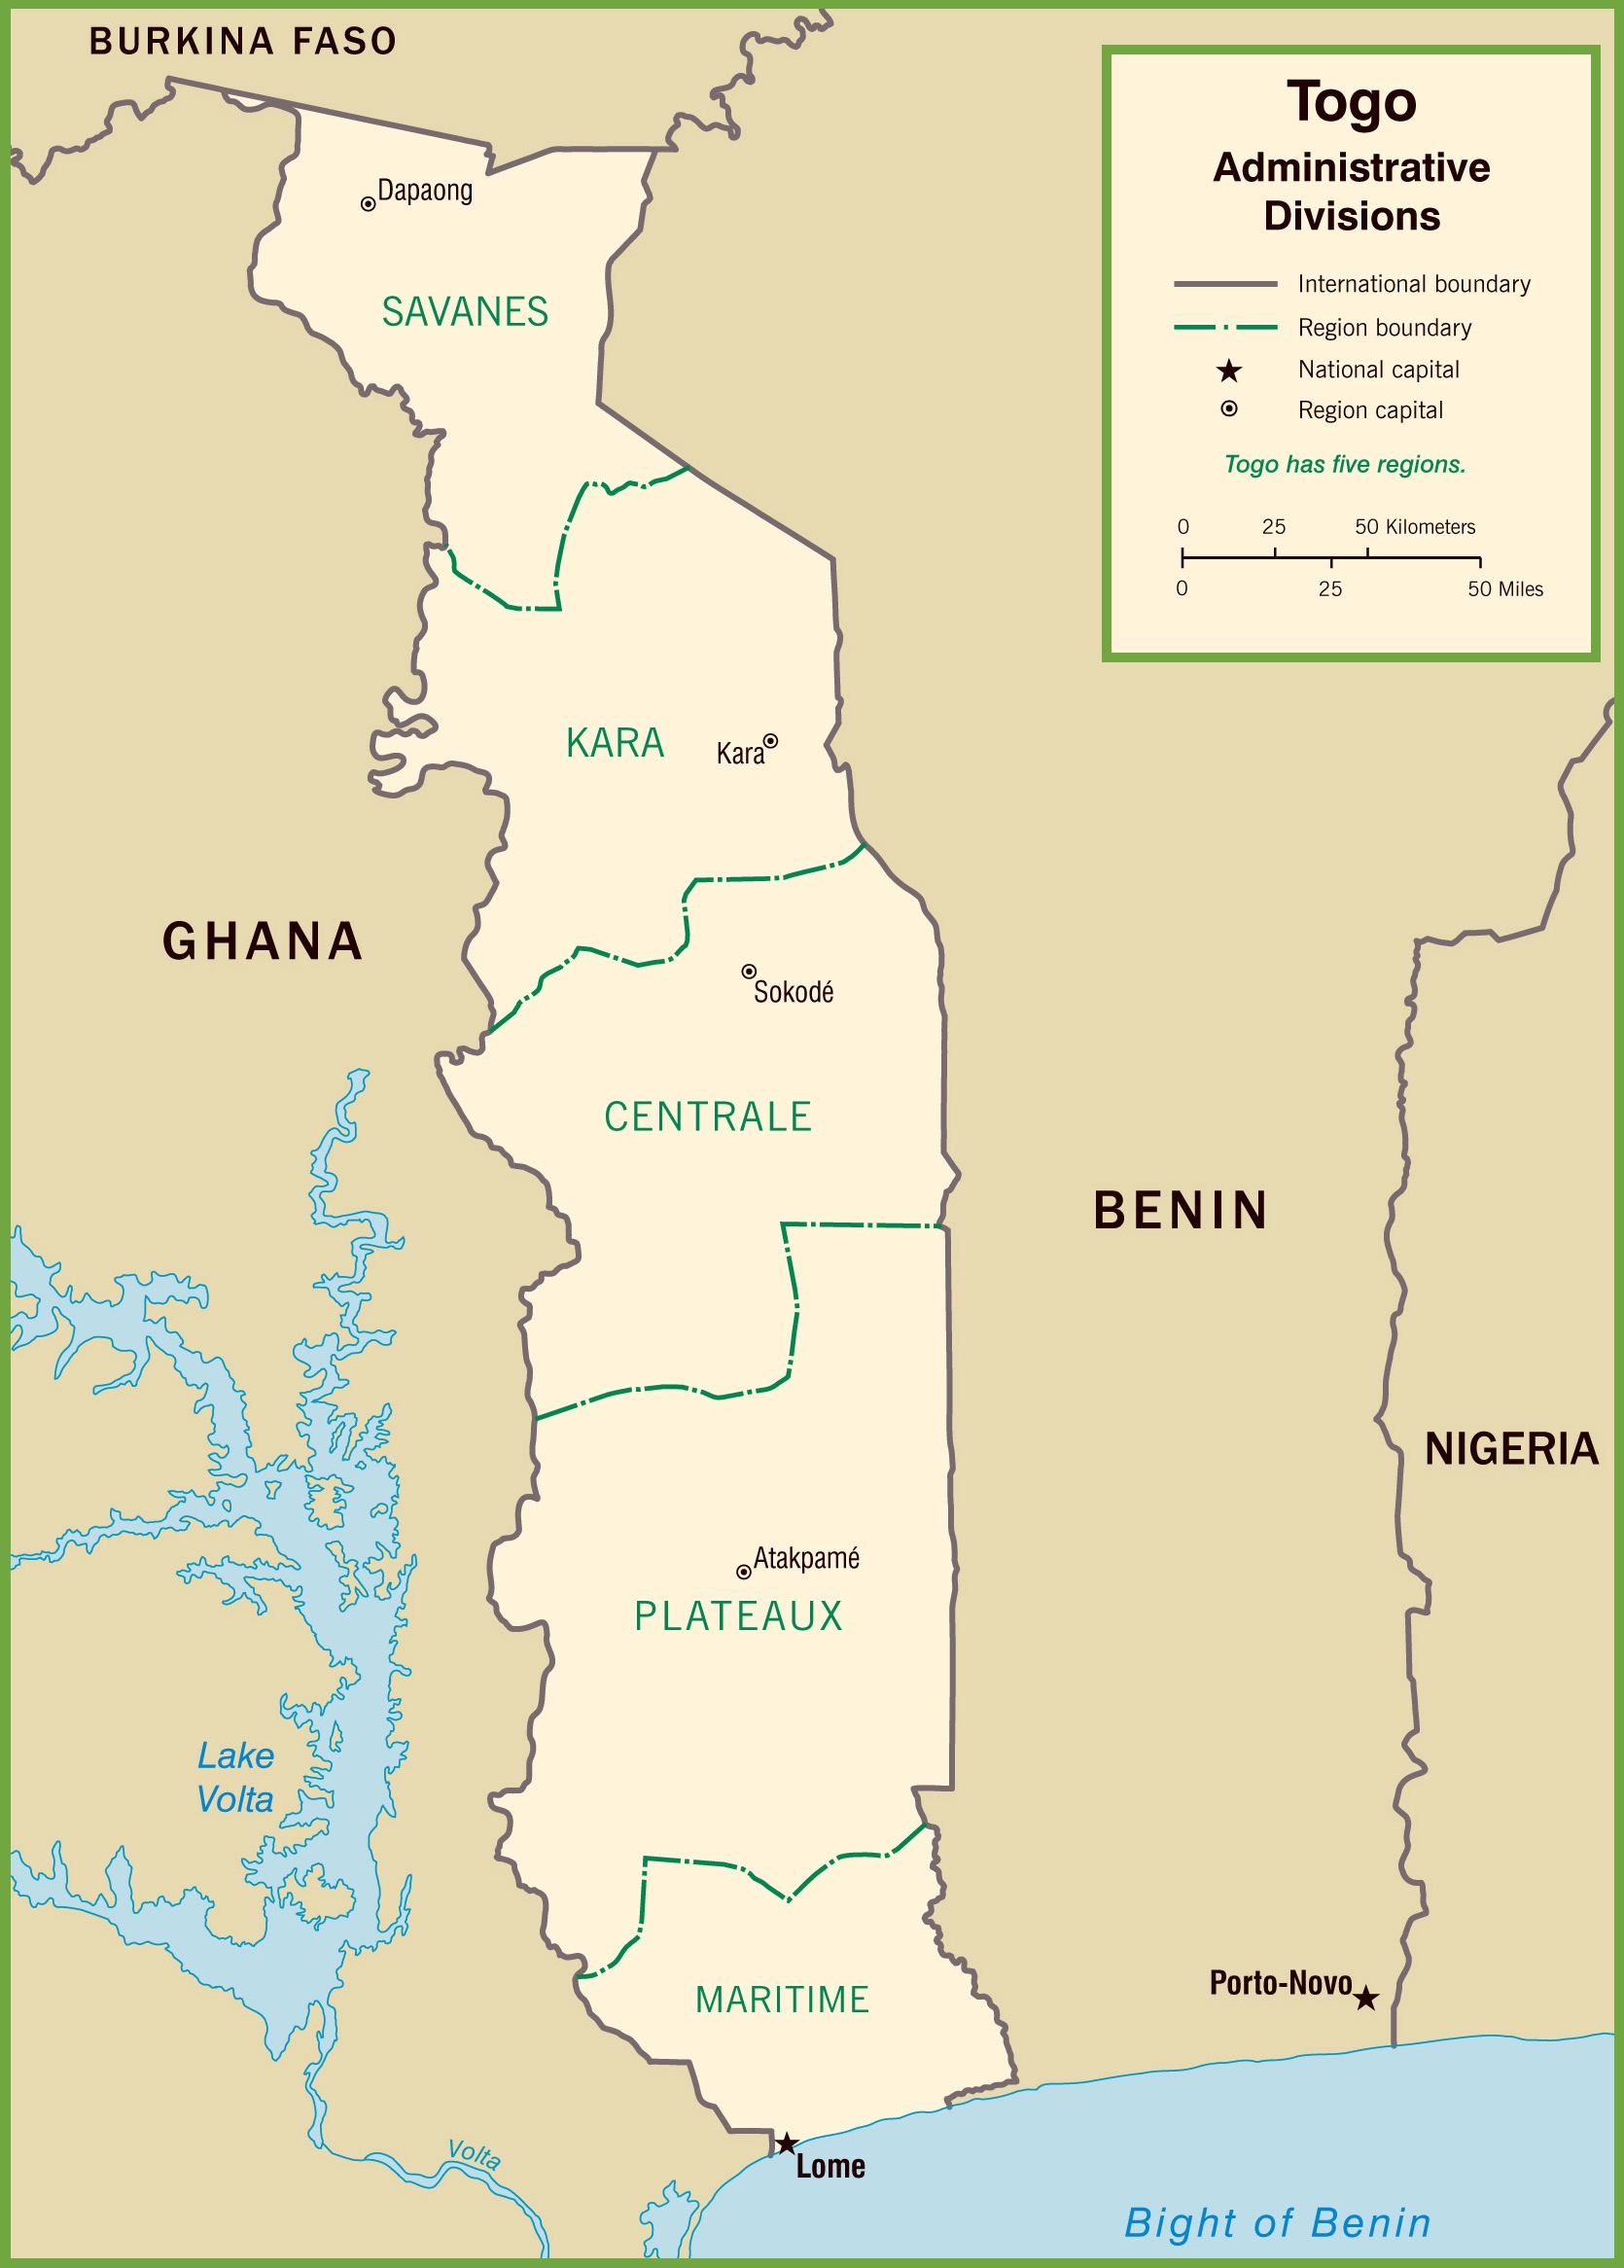 togo-political-map United States America Map Capitals on united states map wall decal, united states and capitals map, united states classroom map, united states heart shape, united states map color, united states poster, united states history presidents, united states and their capitals, united states and its capitals, united states map 1871, map of america states and capitals, map of the united states capitals, united states growth map, united states map with capitals, united states 1791 map, united states city map usa, united states 50 states map with names, united states and caribbean map,